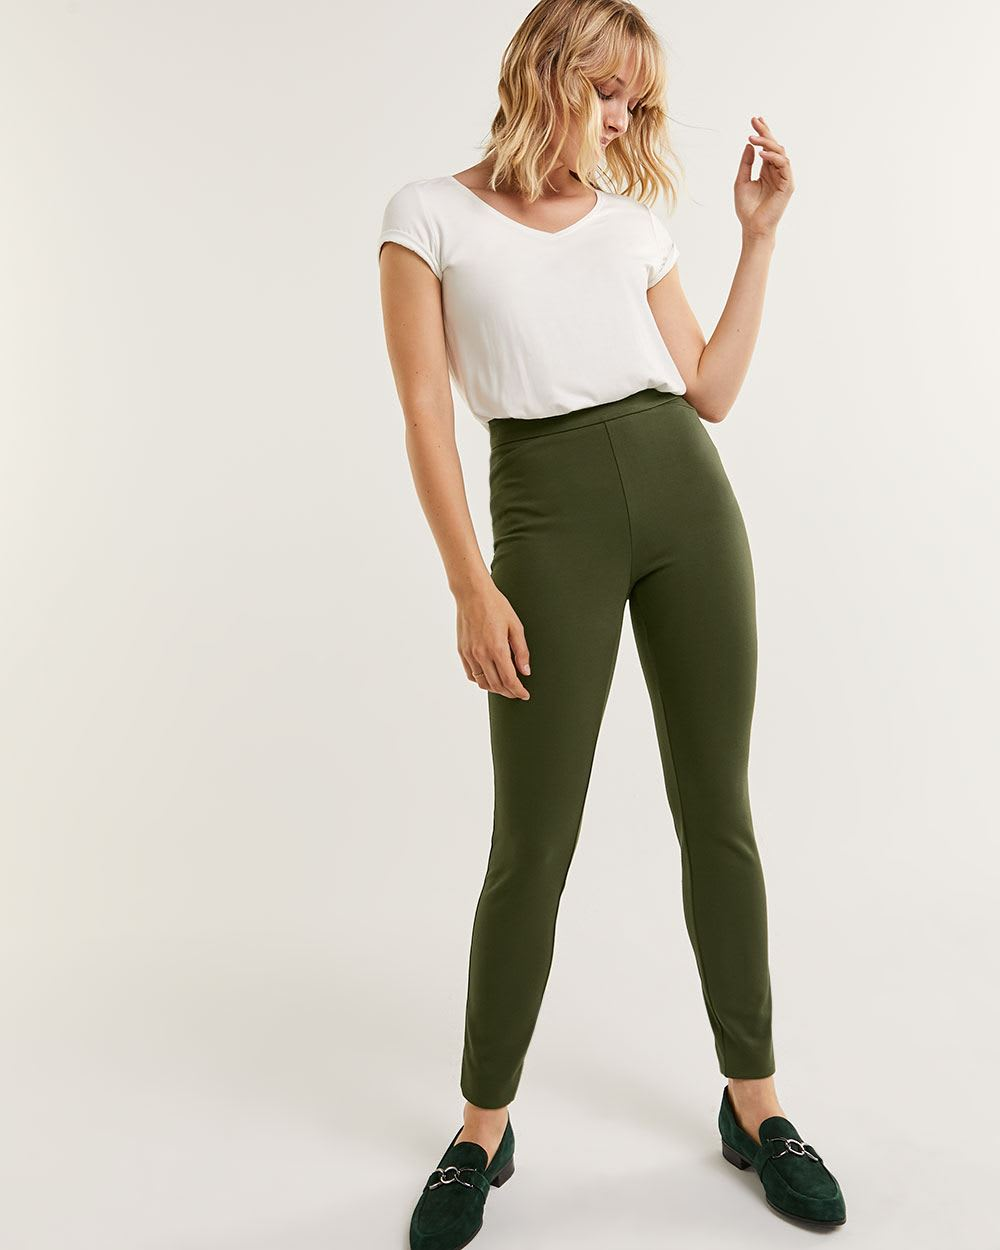 HIgh Rise Ponte de Roma Leggings - Petite